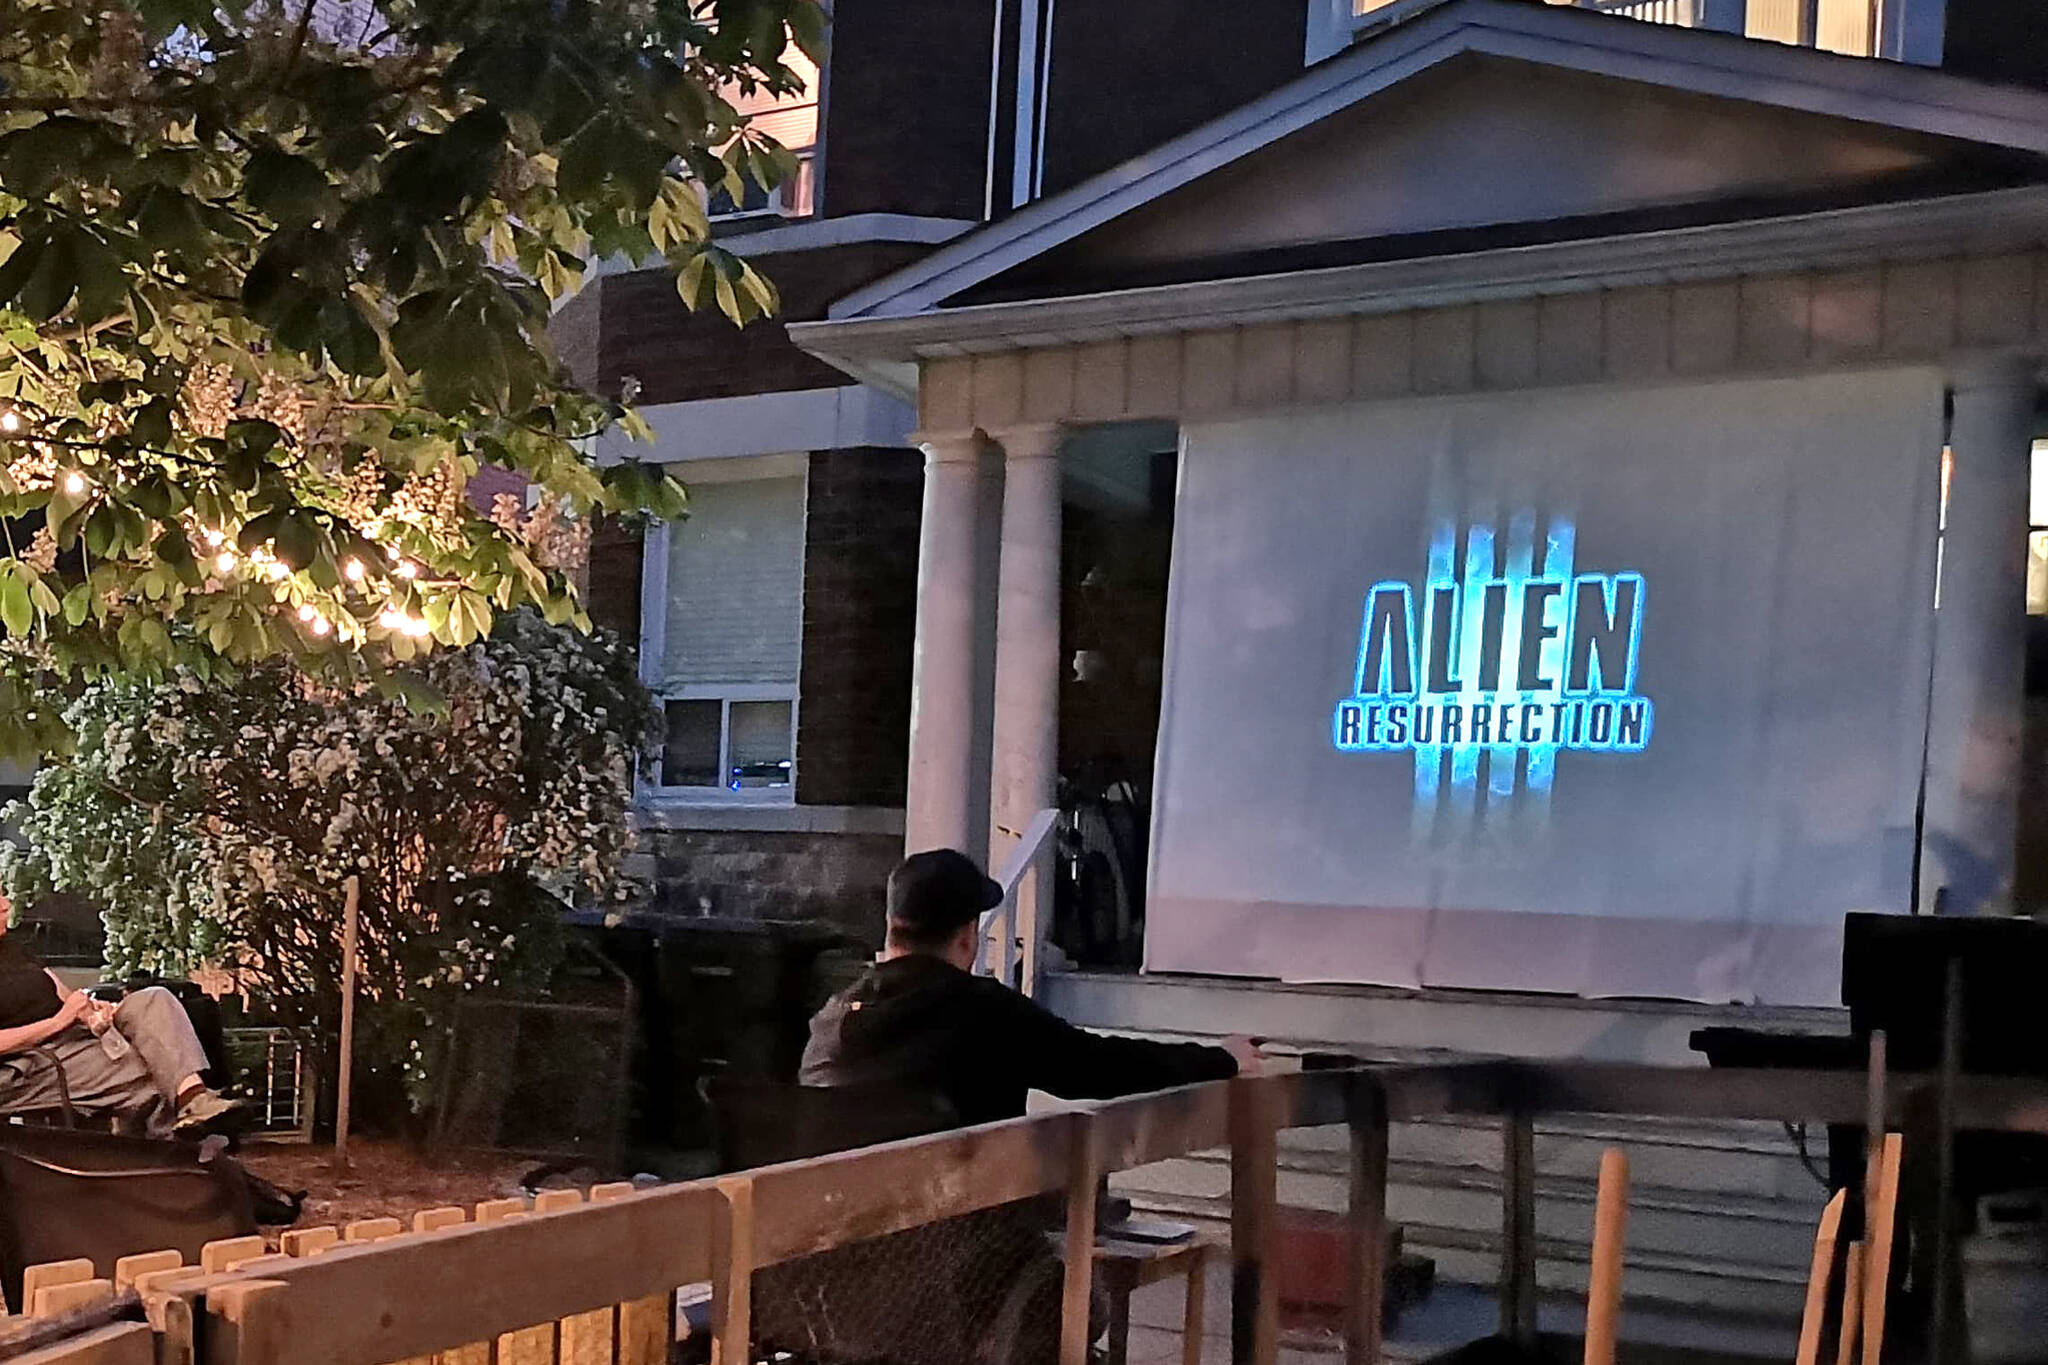 toronto outdoor movies